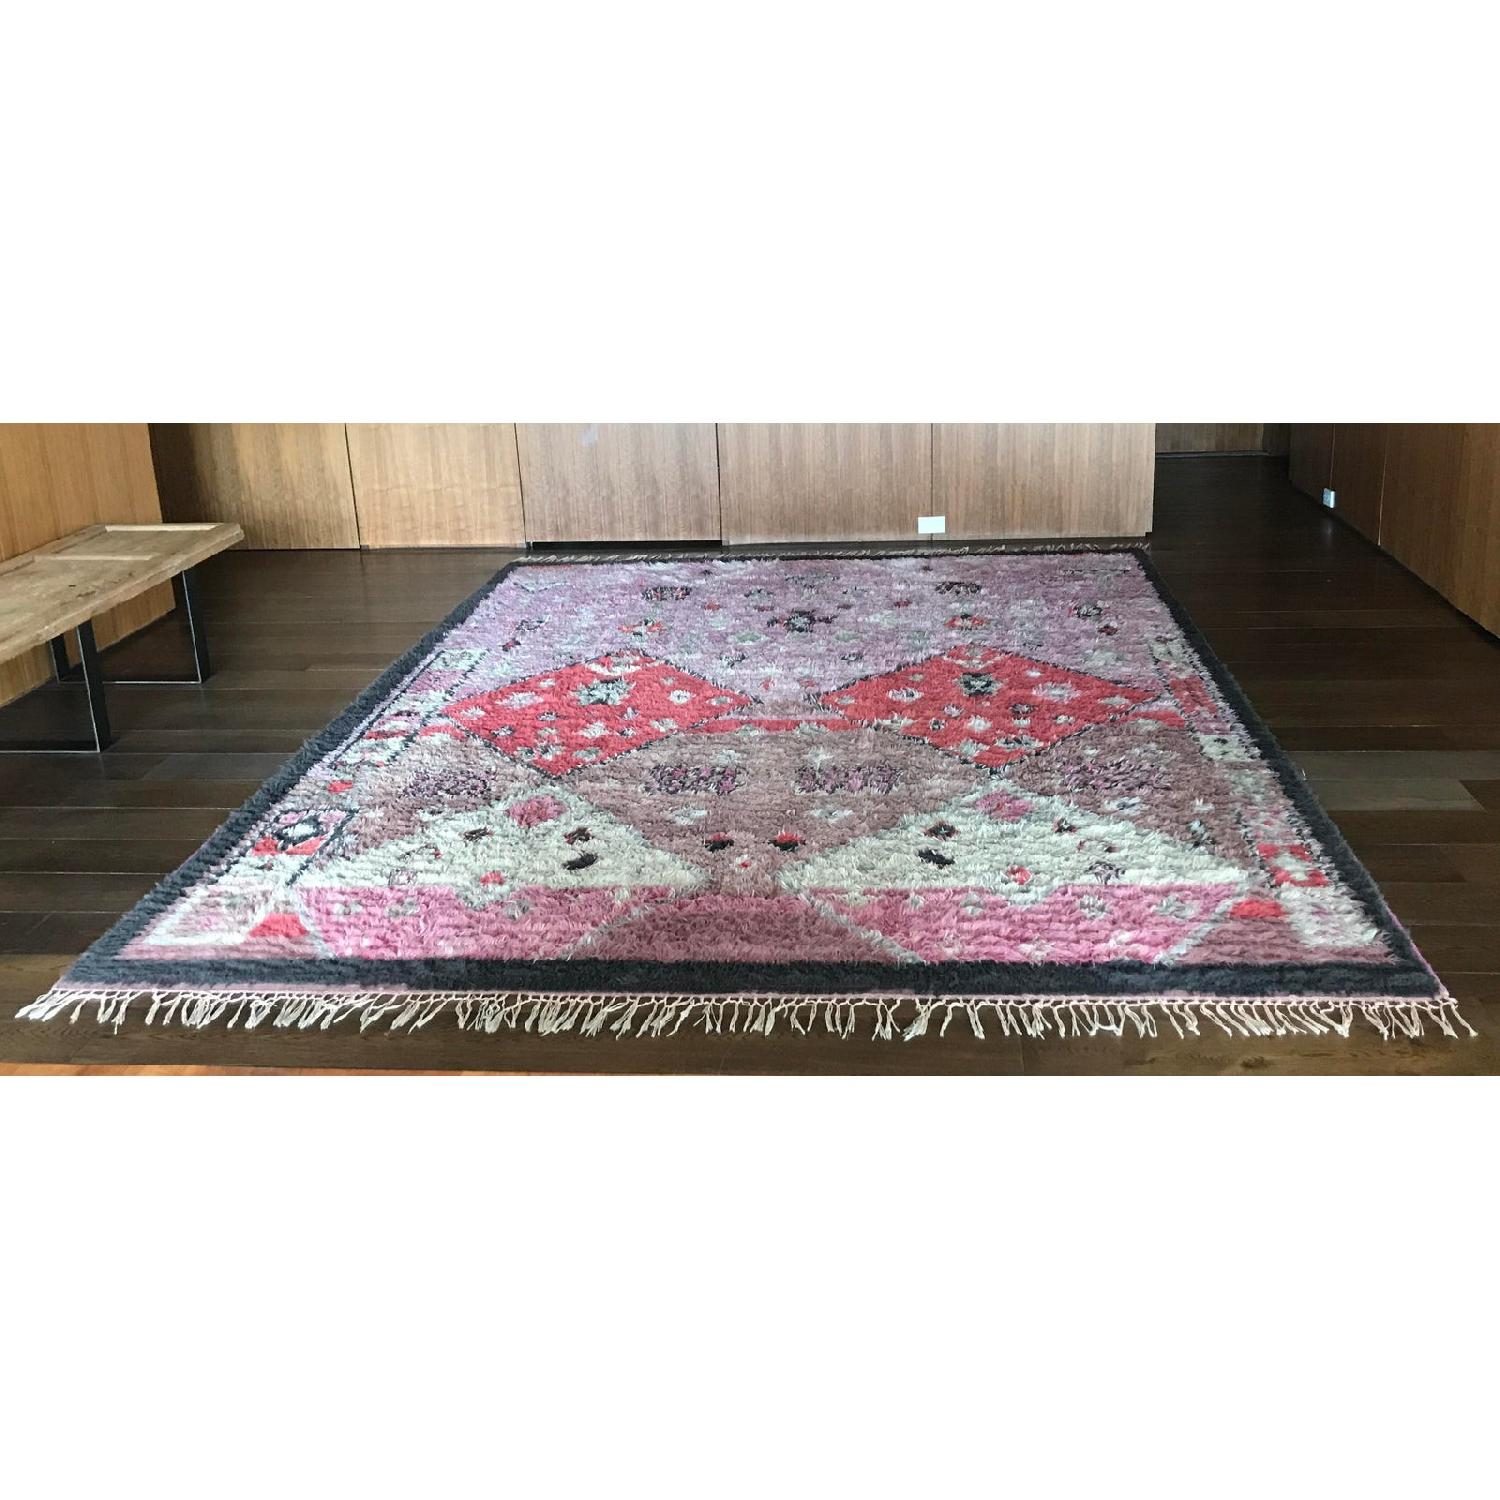 Anthropologie Hand-Knotted Double Diamond Rug - image-1